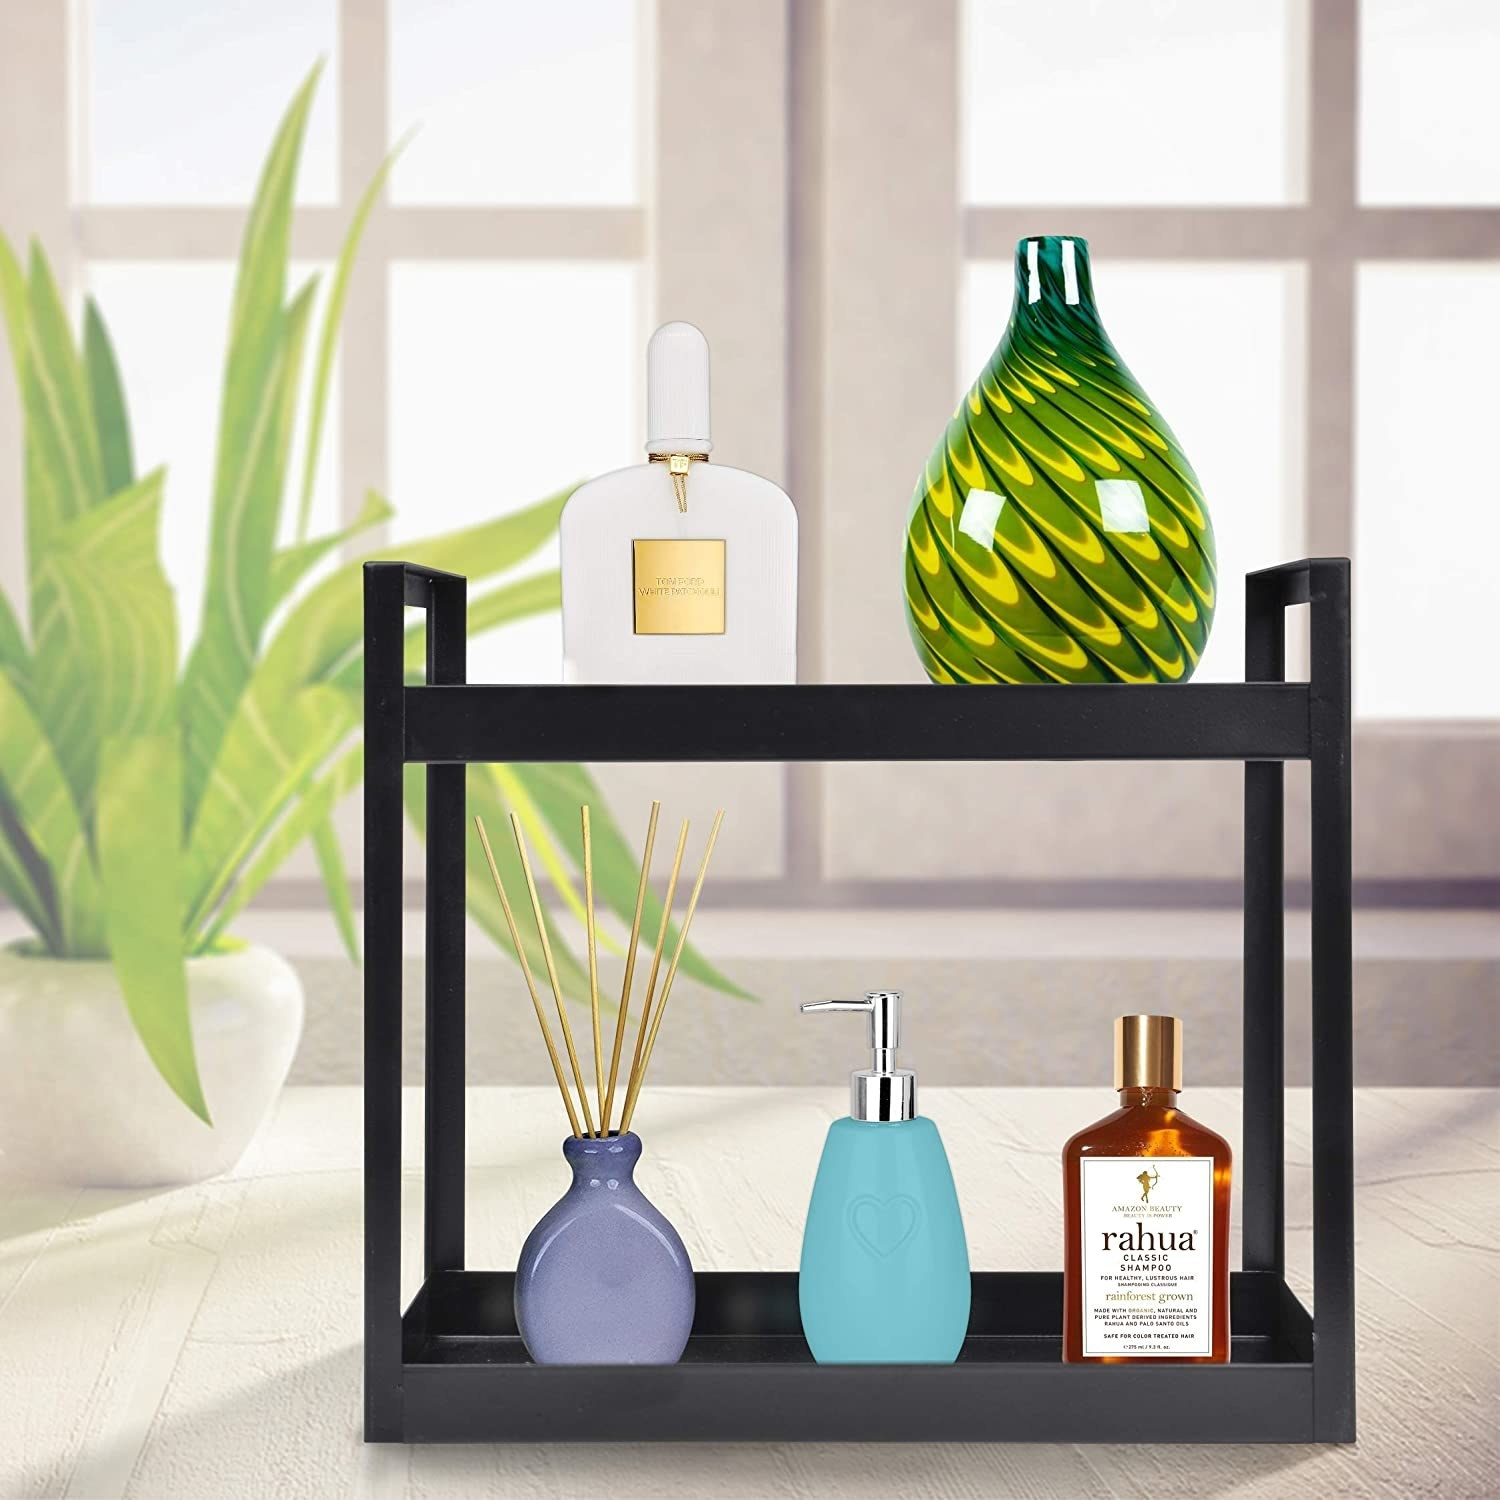 A black, metal two-tier shelf with items on it